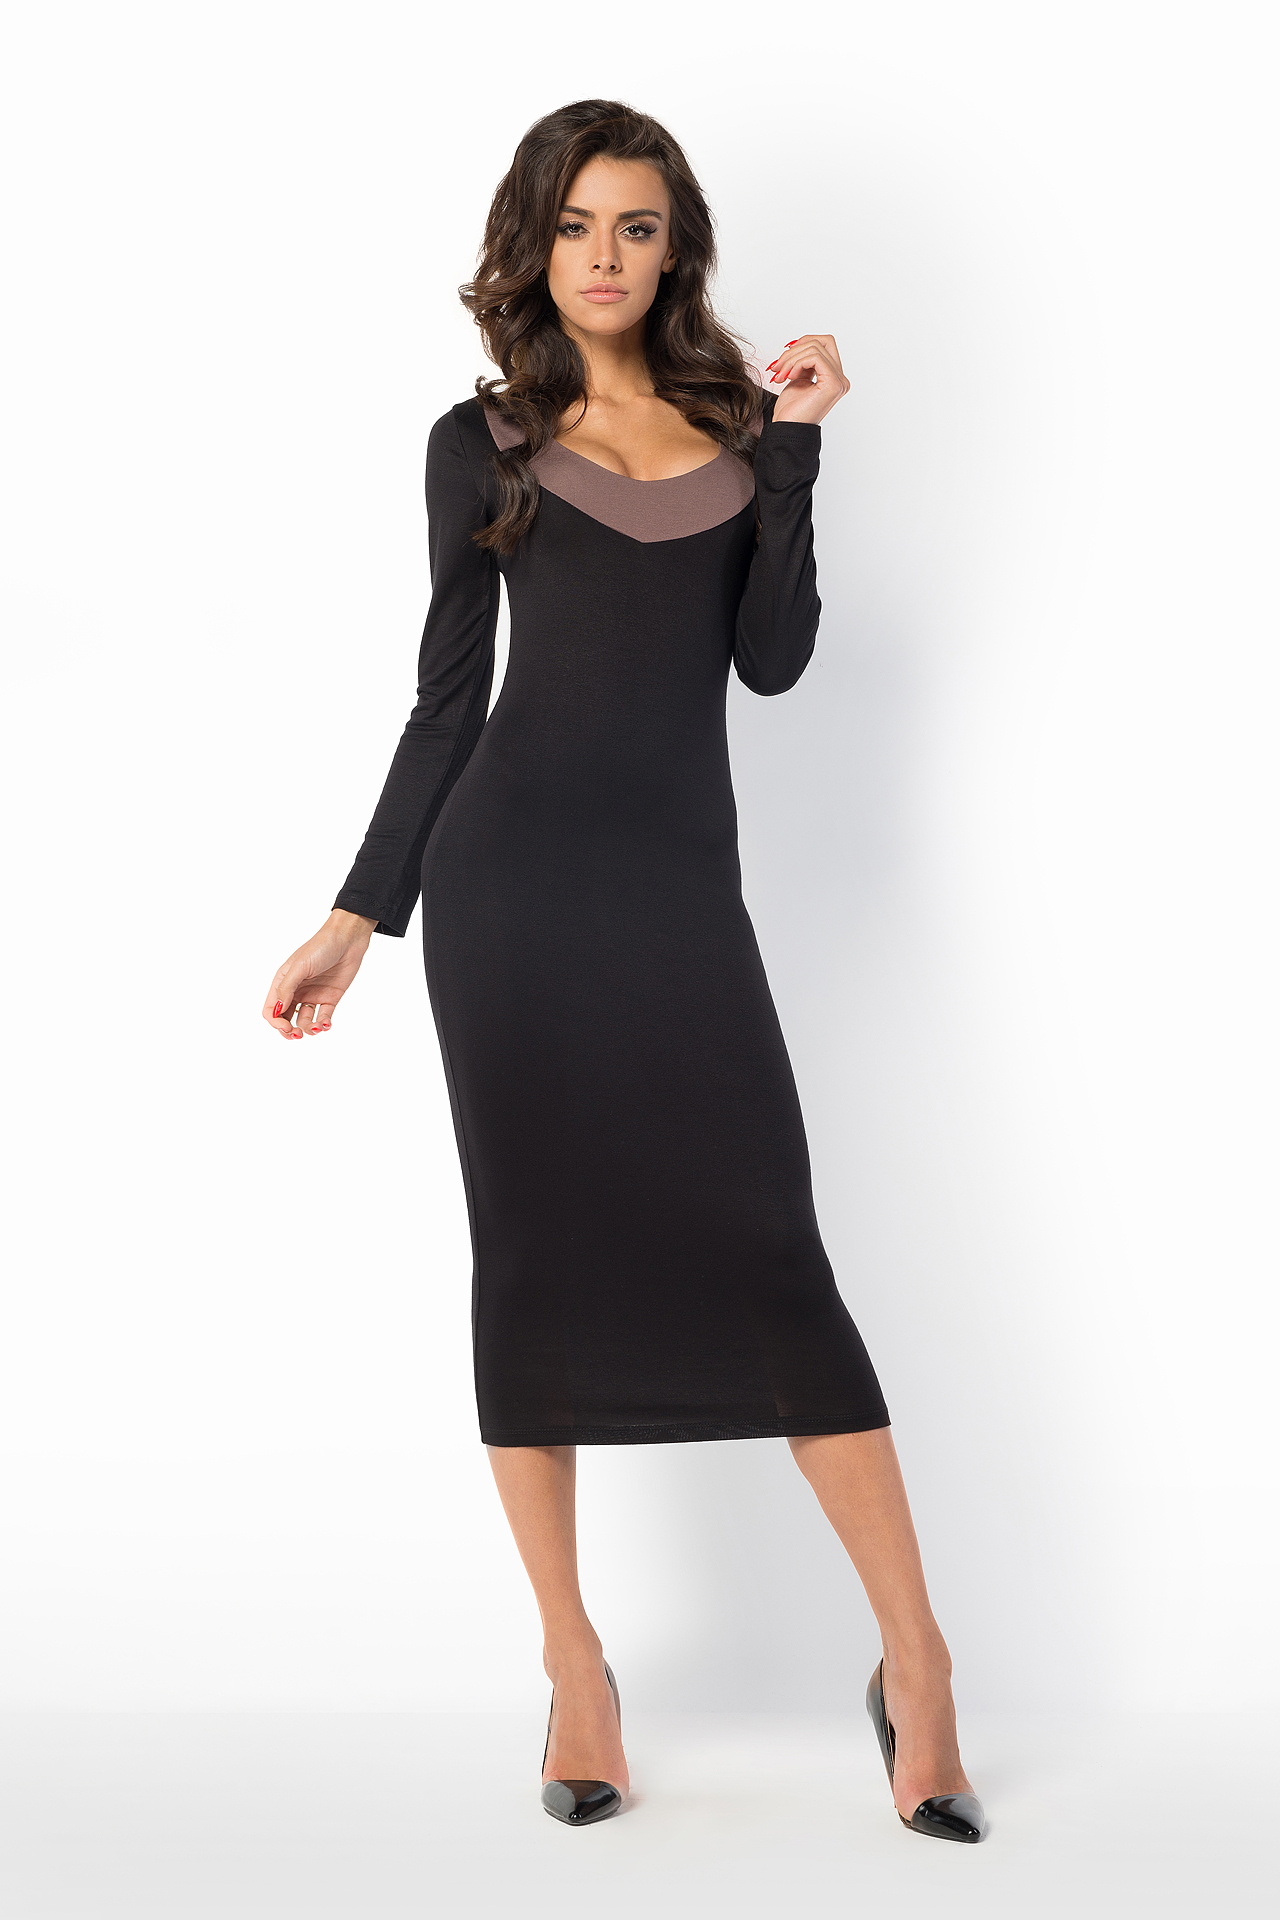 Ladies Evening Party Bodycon Long Sleeve Scoop Neck Fitted